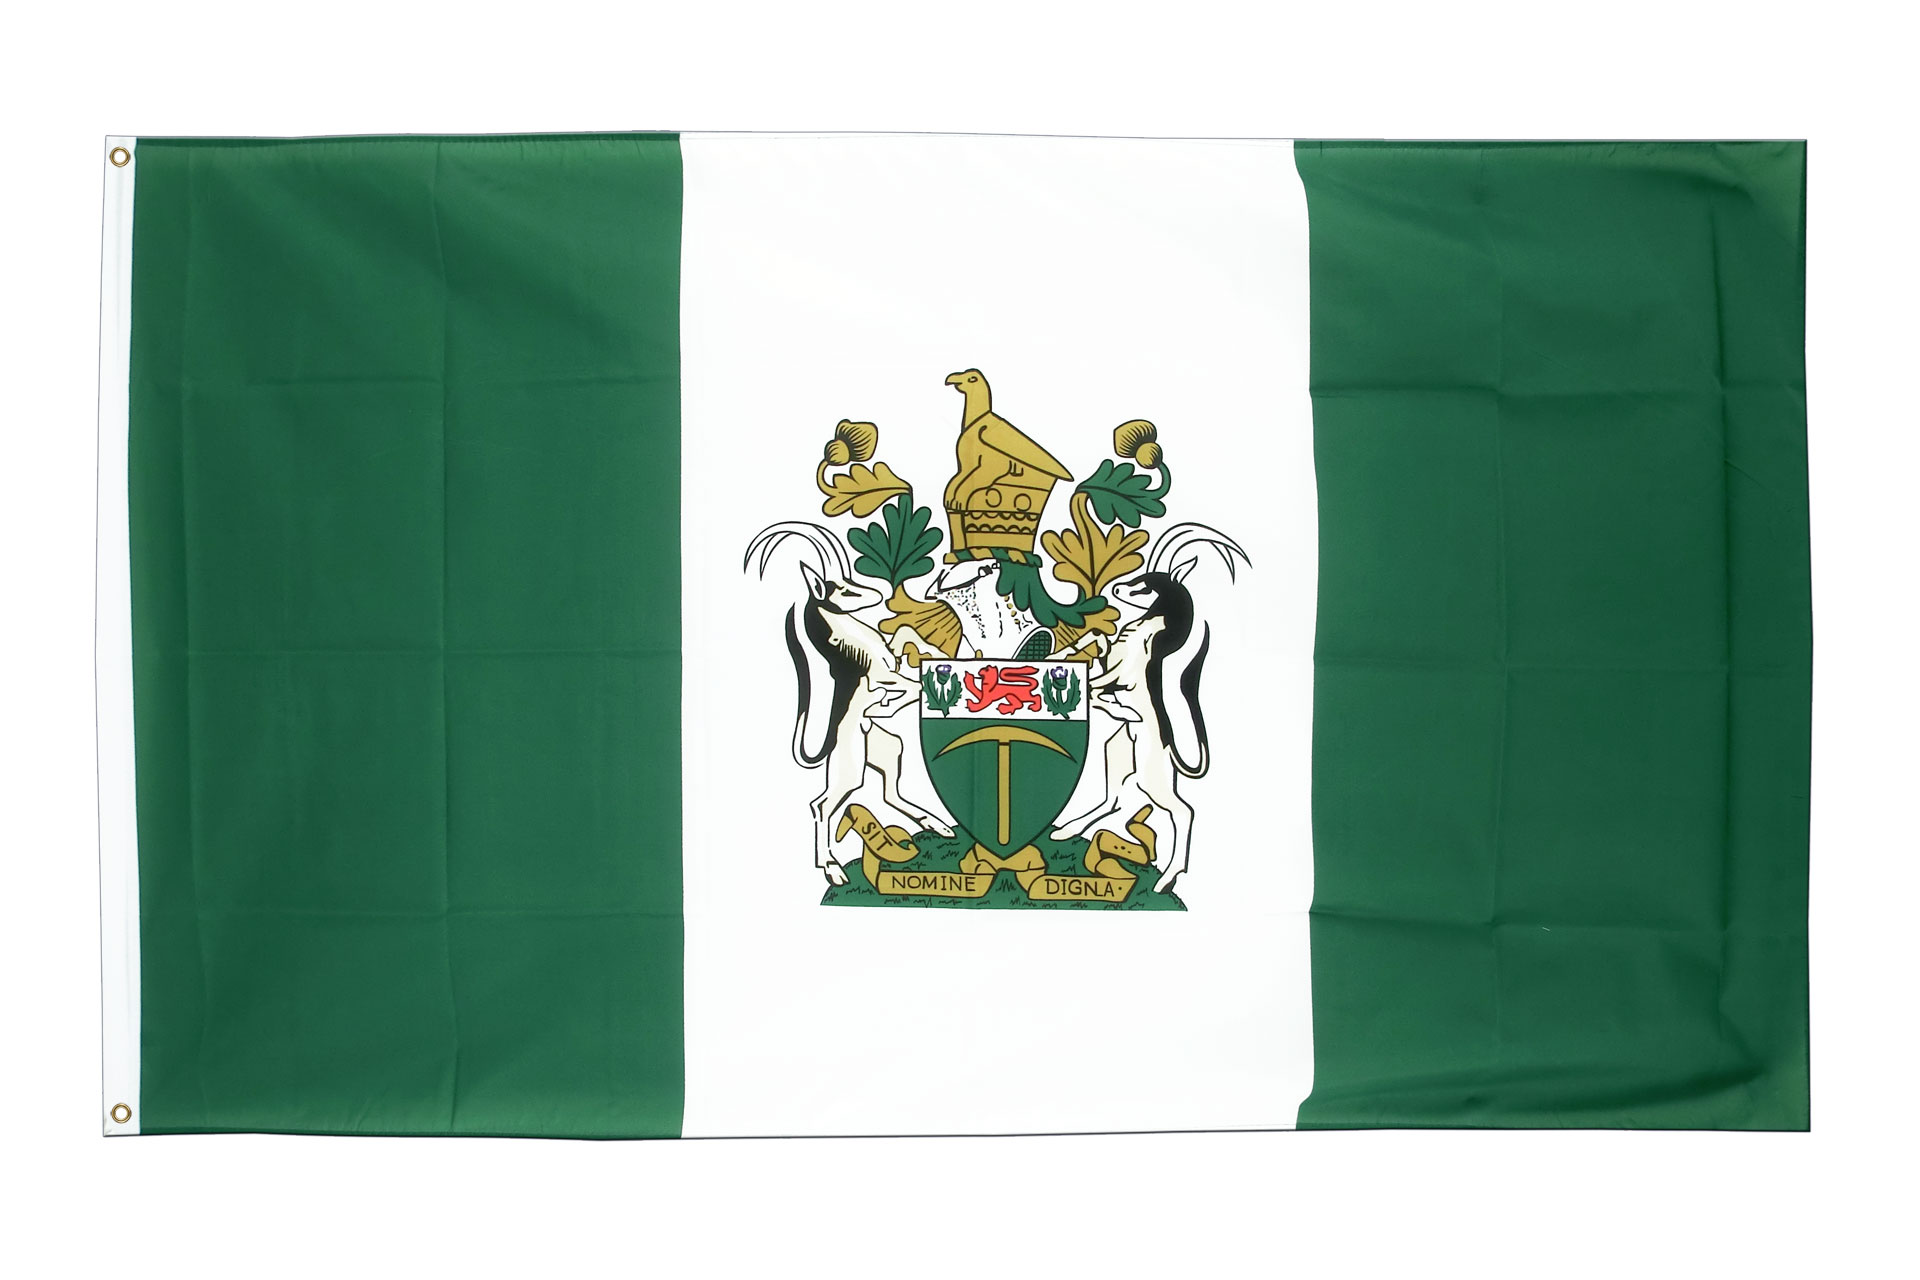 Buy Rhodesia Flag - 3x5 ft (90x150 cm) - Royal-Flags: https://www.royal-flags.co.uk/rhodesia-flag-1970.html